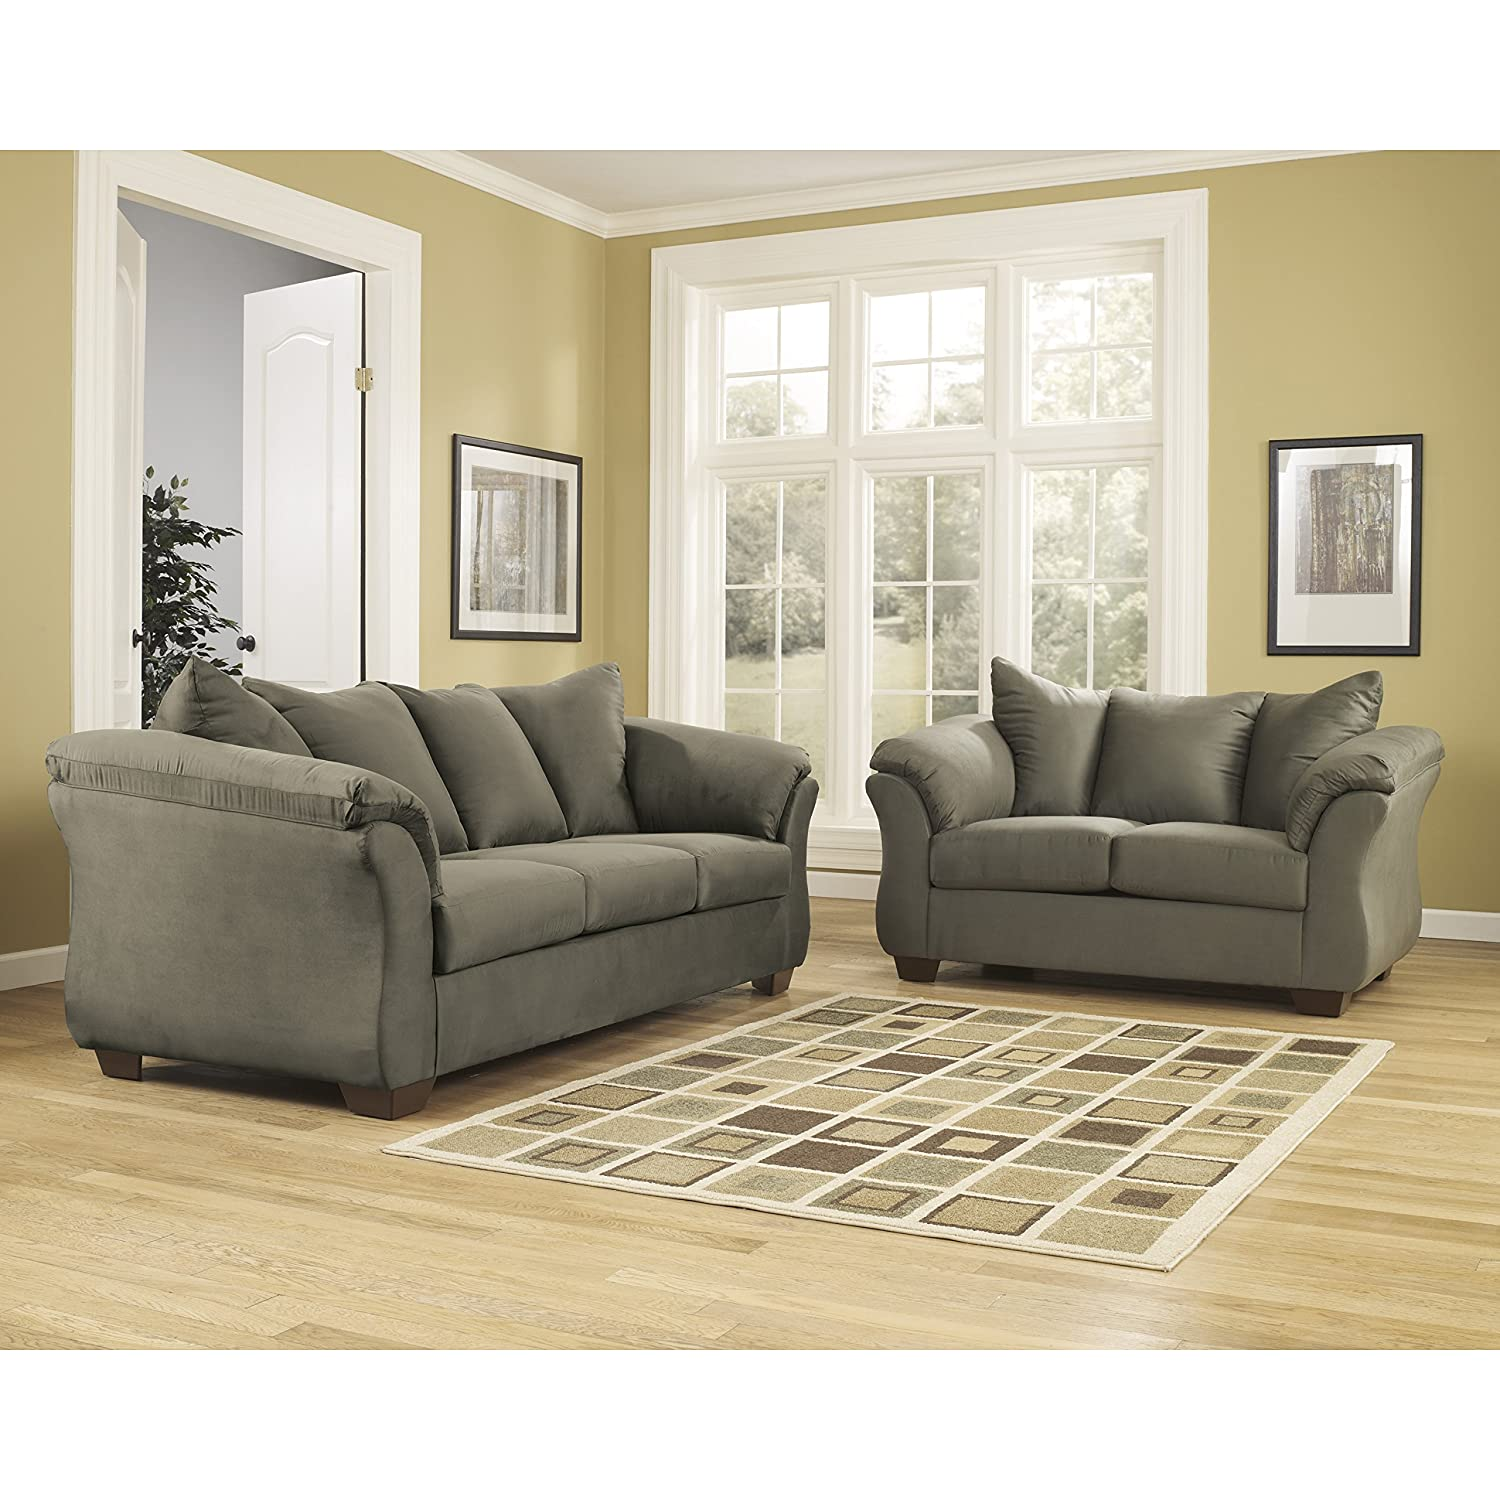 Amazon com flash furniture signature design by ashley darcy living room set in sage microfiber kitchen dining